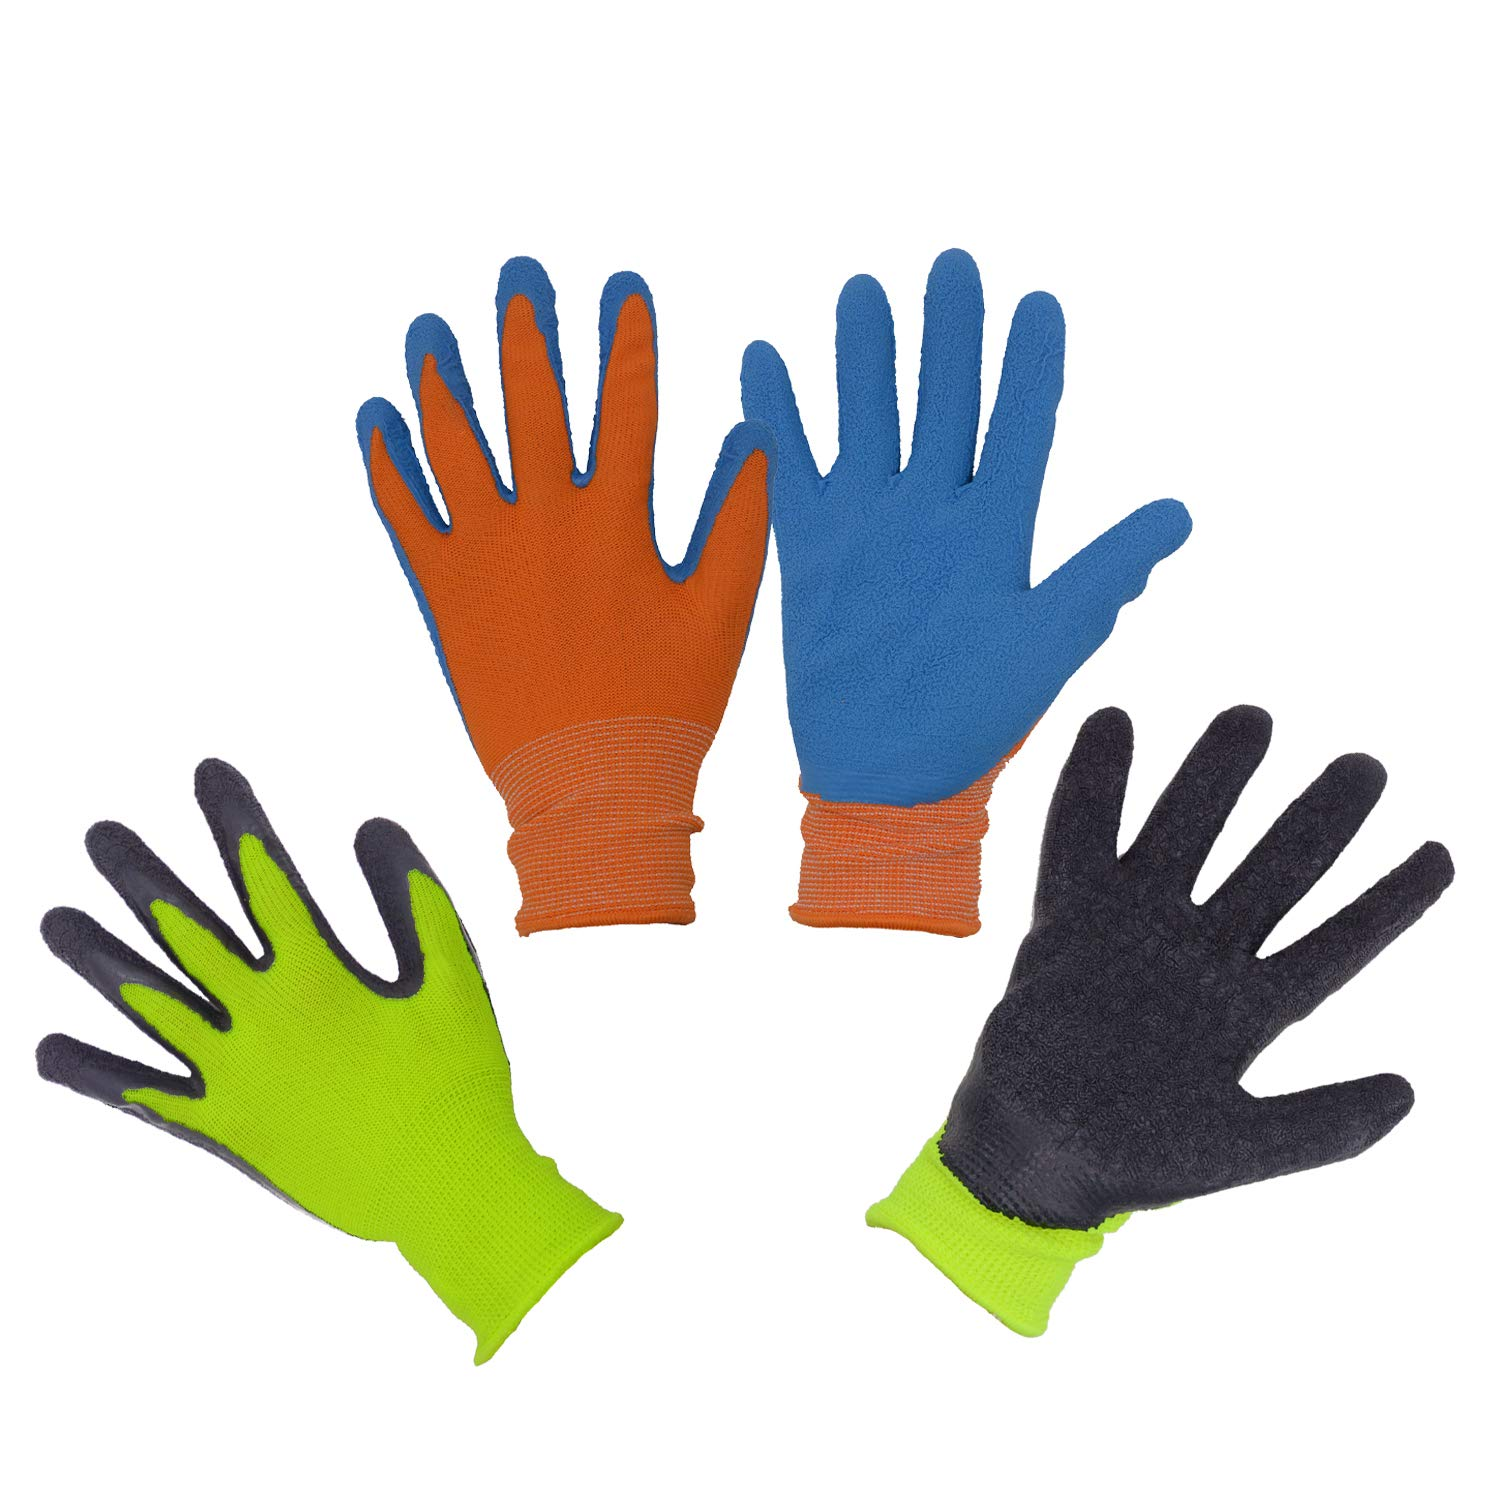 Kids Gardening Gripper Gloves for age 3-13, 2 Pairs Foam Rubber Coated Garden Gloves for girls boys (Size 2 (age 3-4))